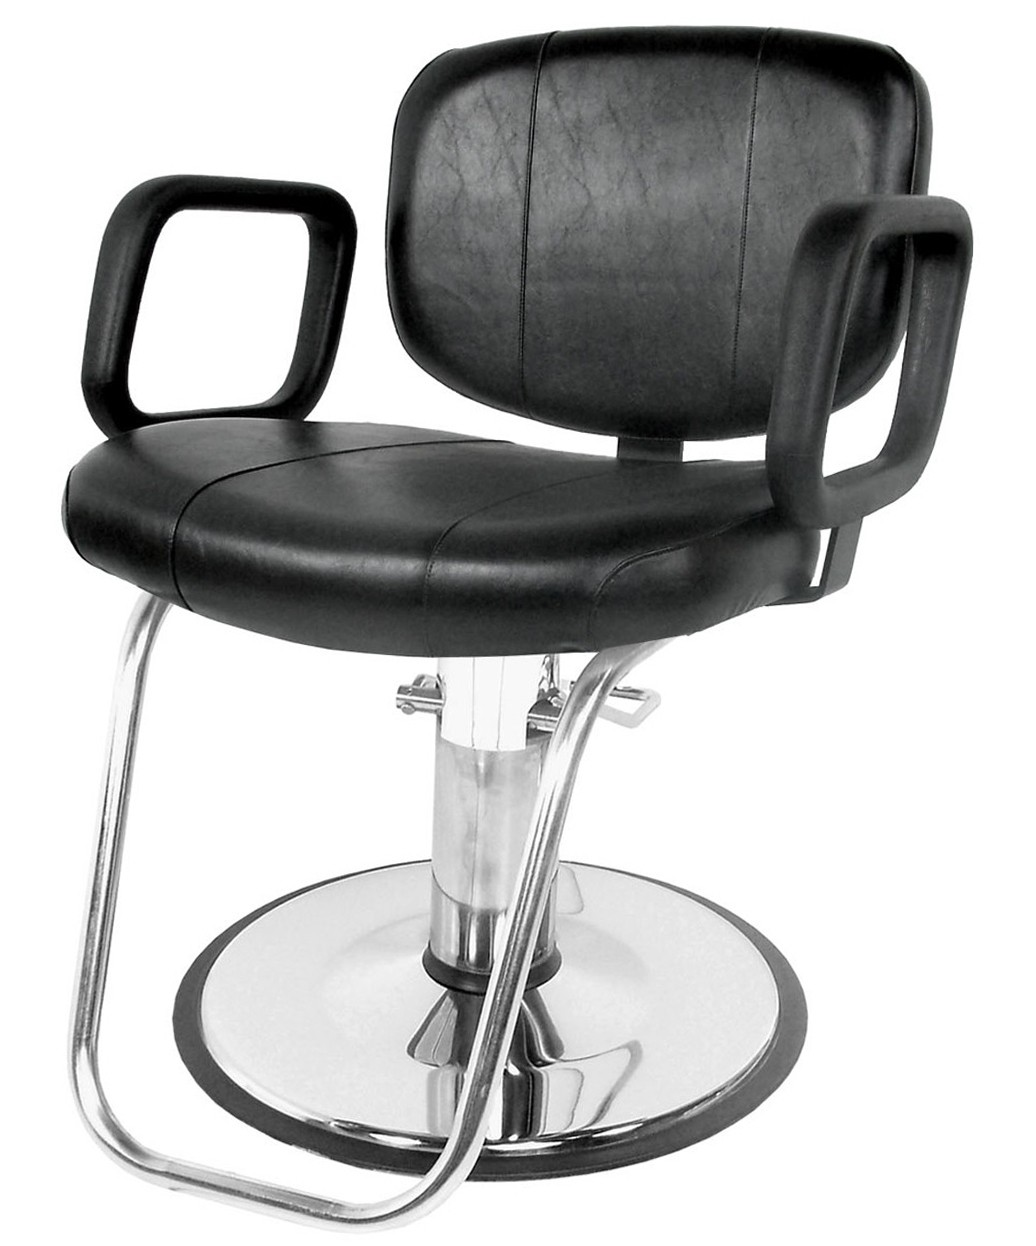 3700 Cody Styling Chairs with Standard Base